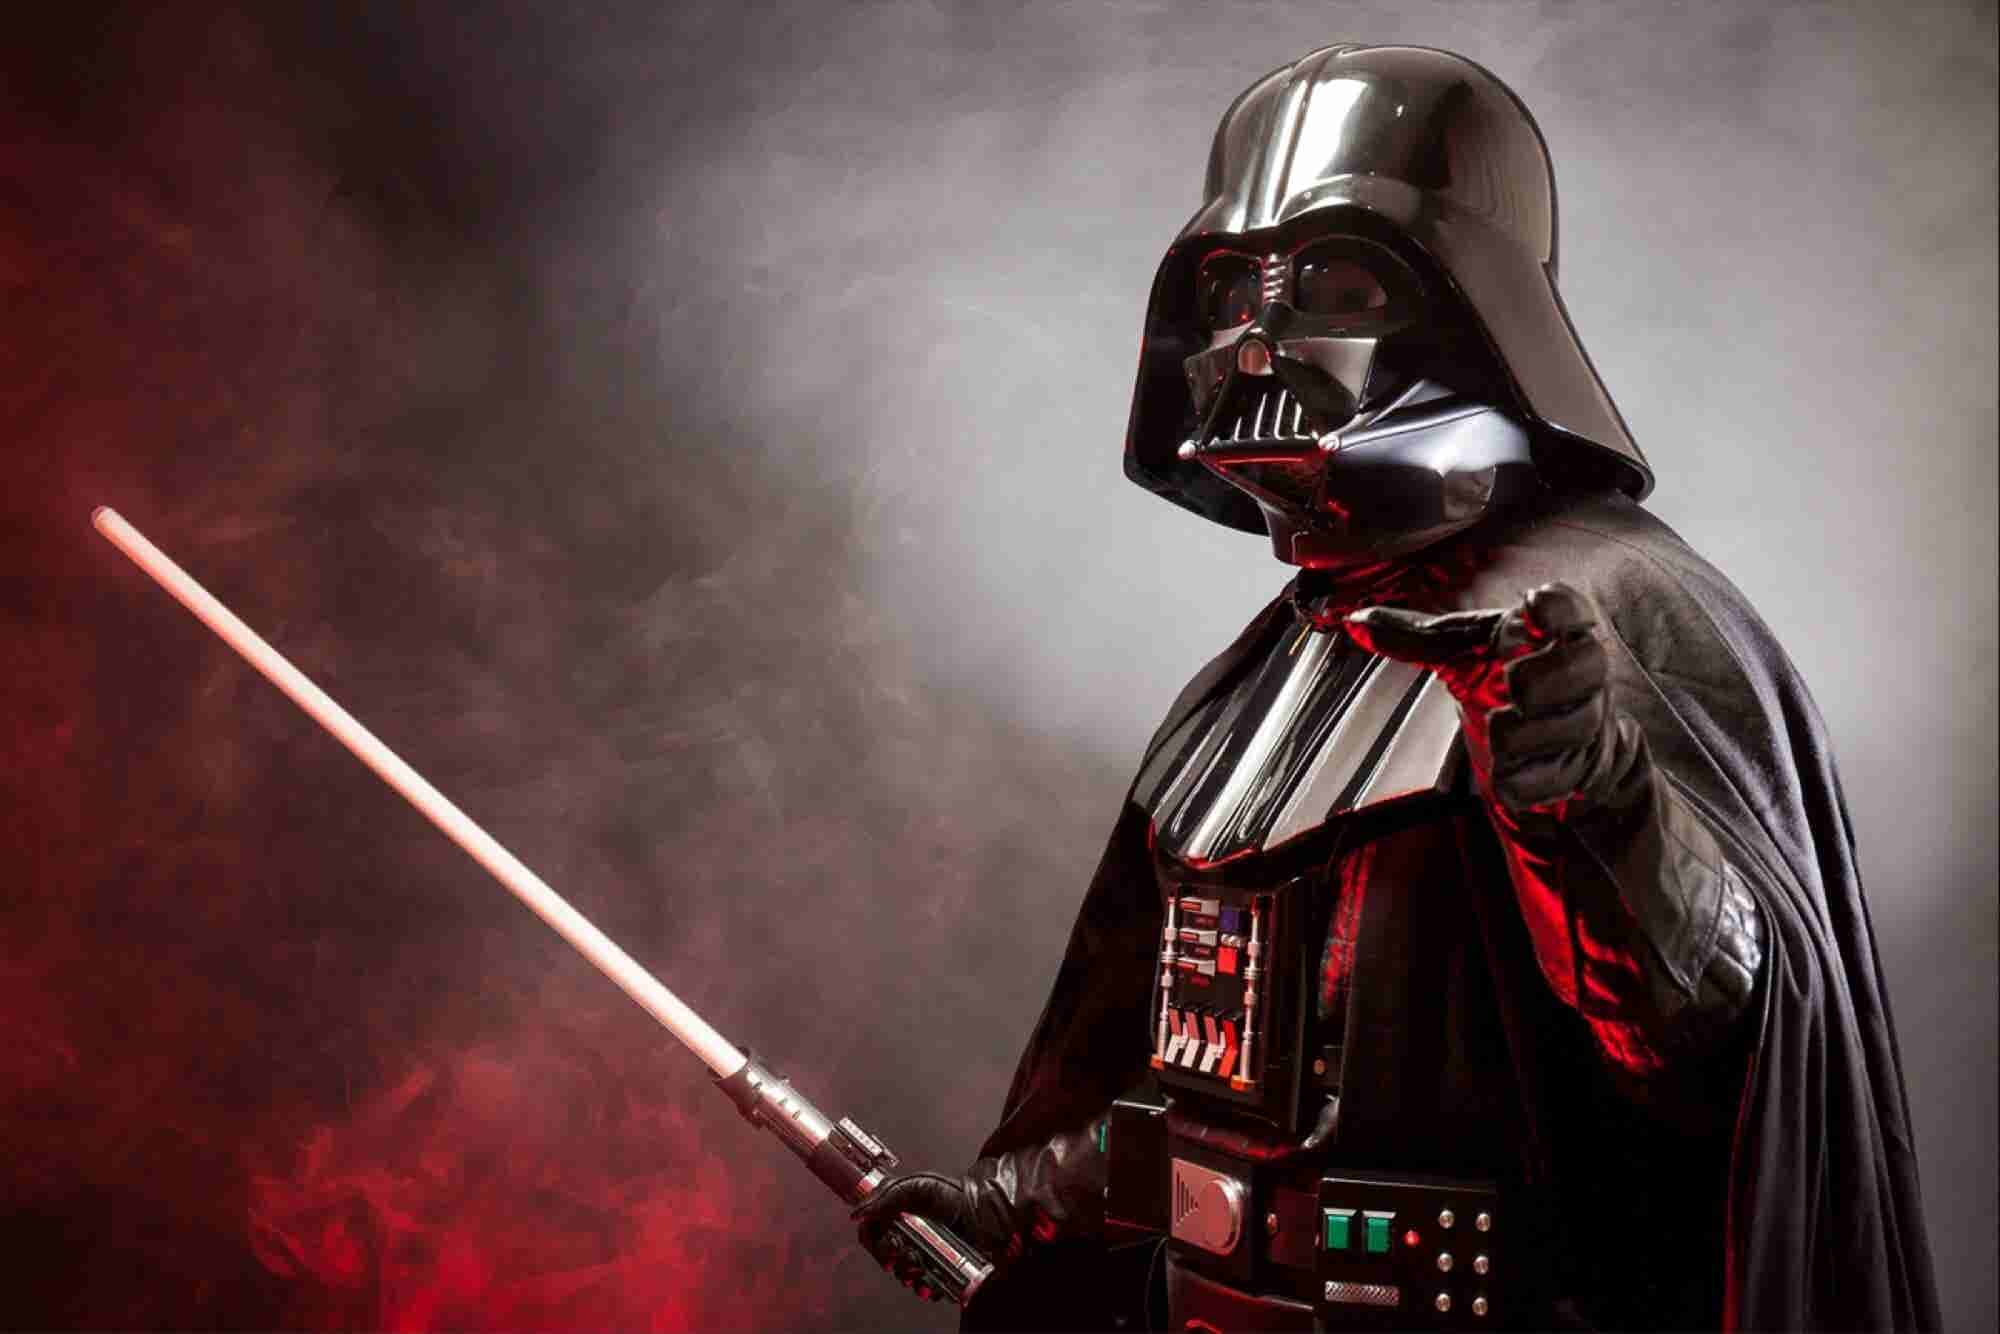 Stop What You're Doing. There's a New Stars Wars Trailer!